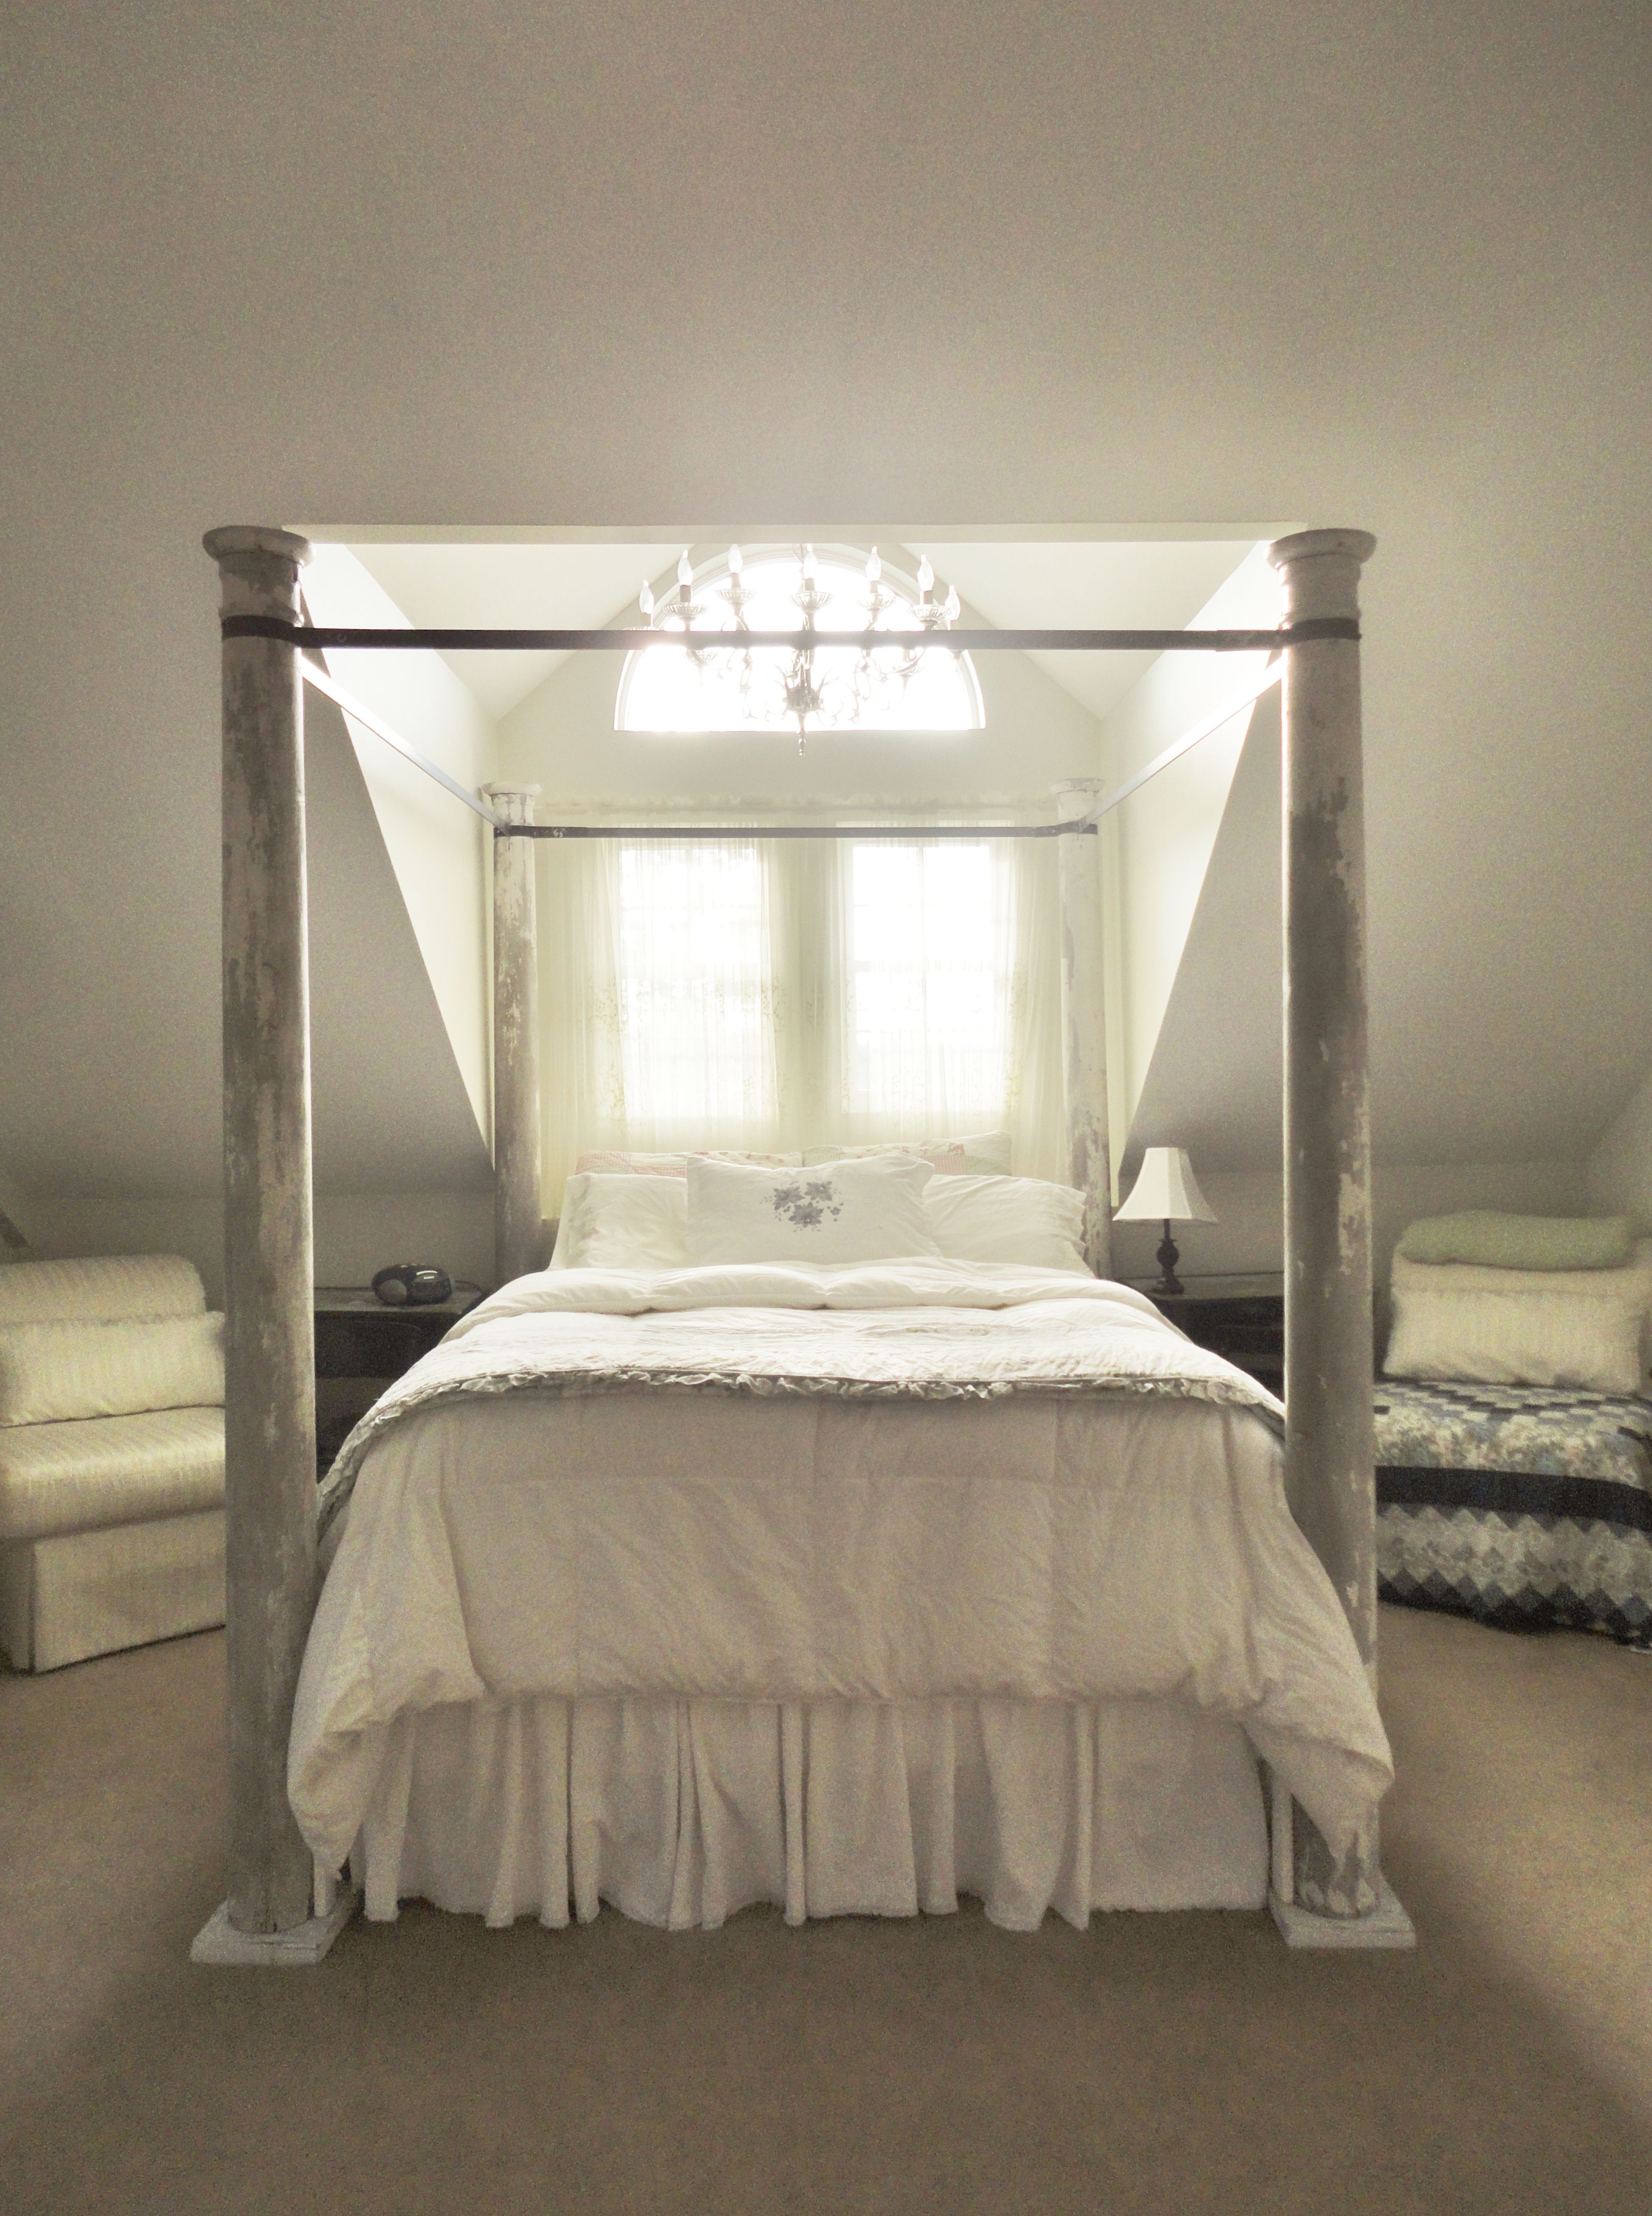 Re-purposed porch post 4 poster canopy bed & Re-purposed porch post 4 poster canopy bed | Bedrooms | Pinterest ...